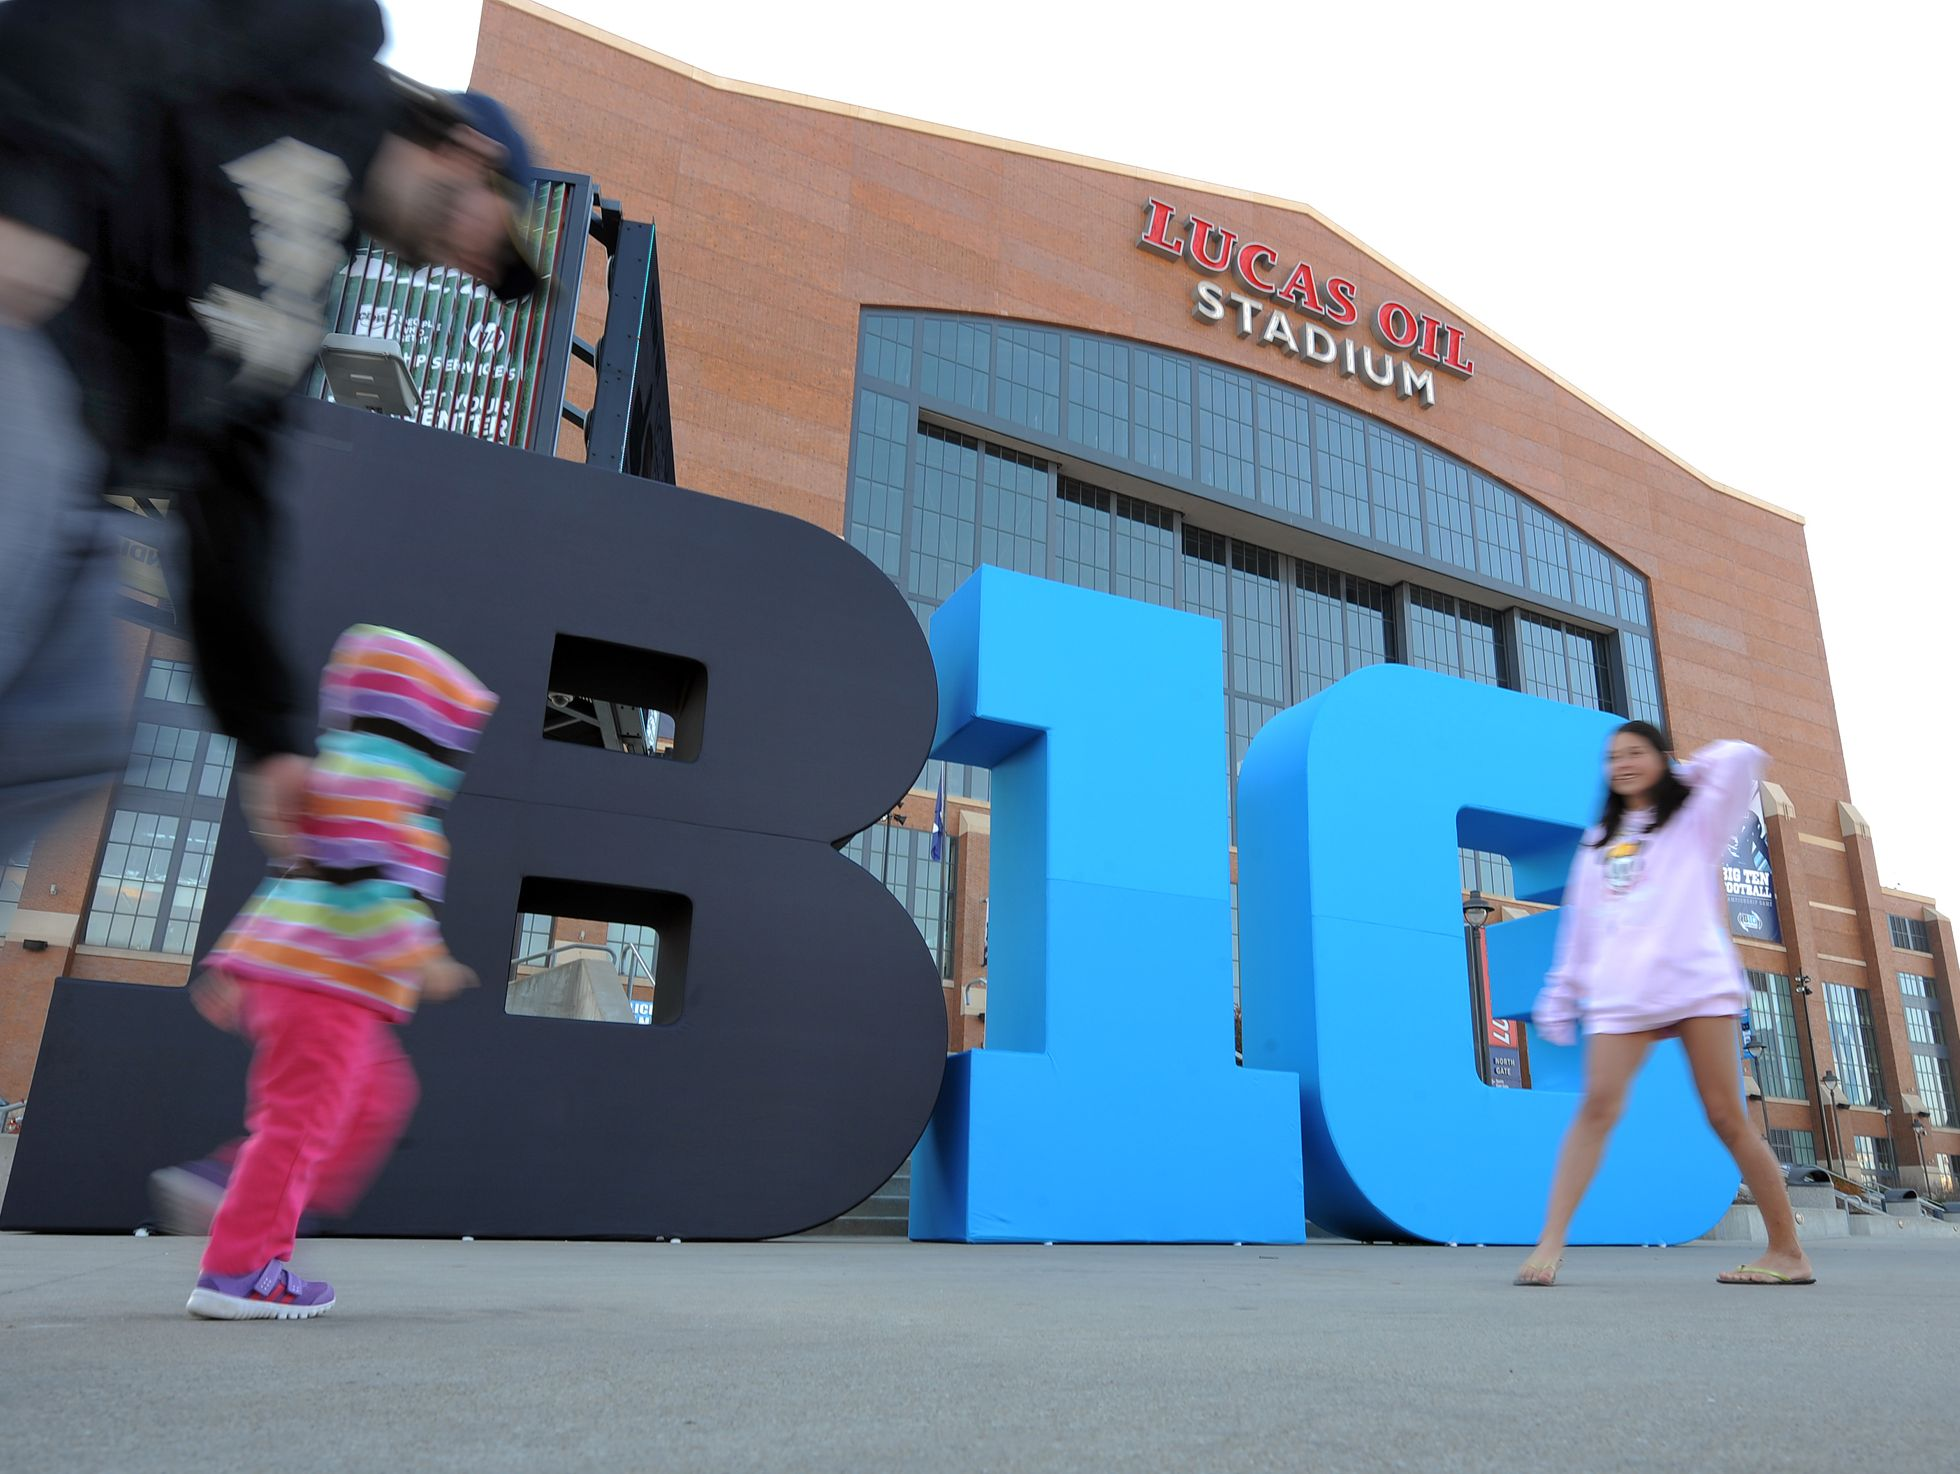 Big Ten football fans walk by the Big Ten logo out front of Lucas Oil Stadium Friday afternoon in preparation for this the Big Ten football championship game Saturday evening. The Big Ten Fan Fest will also be open Saturday from 10 a.m. to 8 p.m. Matt Kryger / The Star